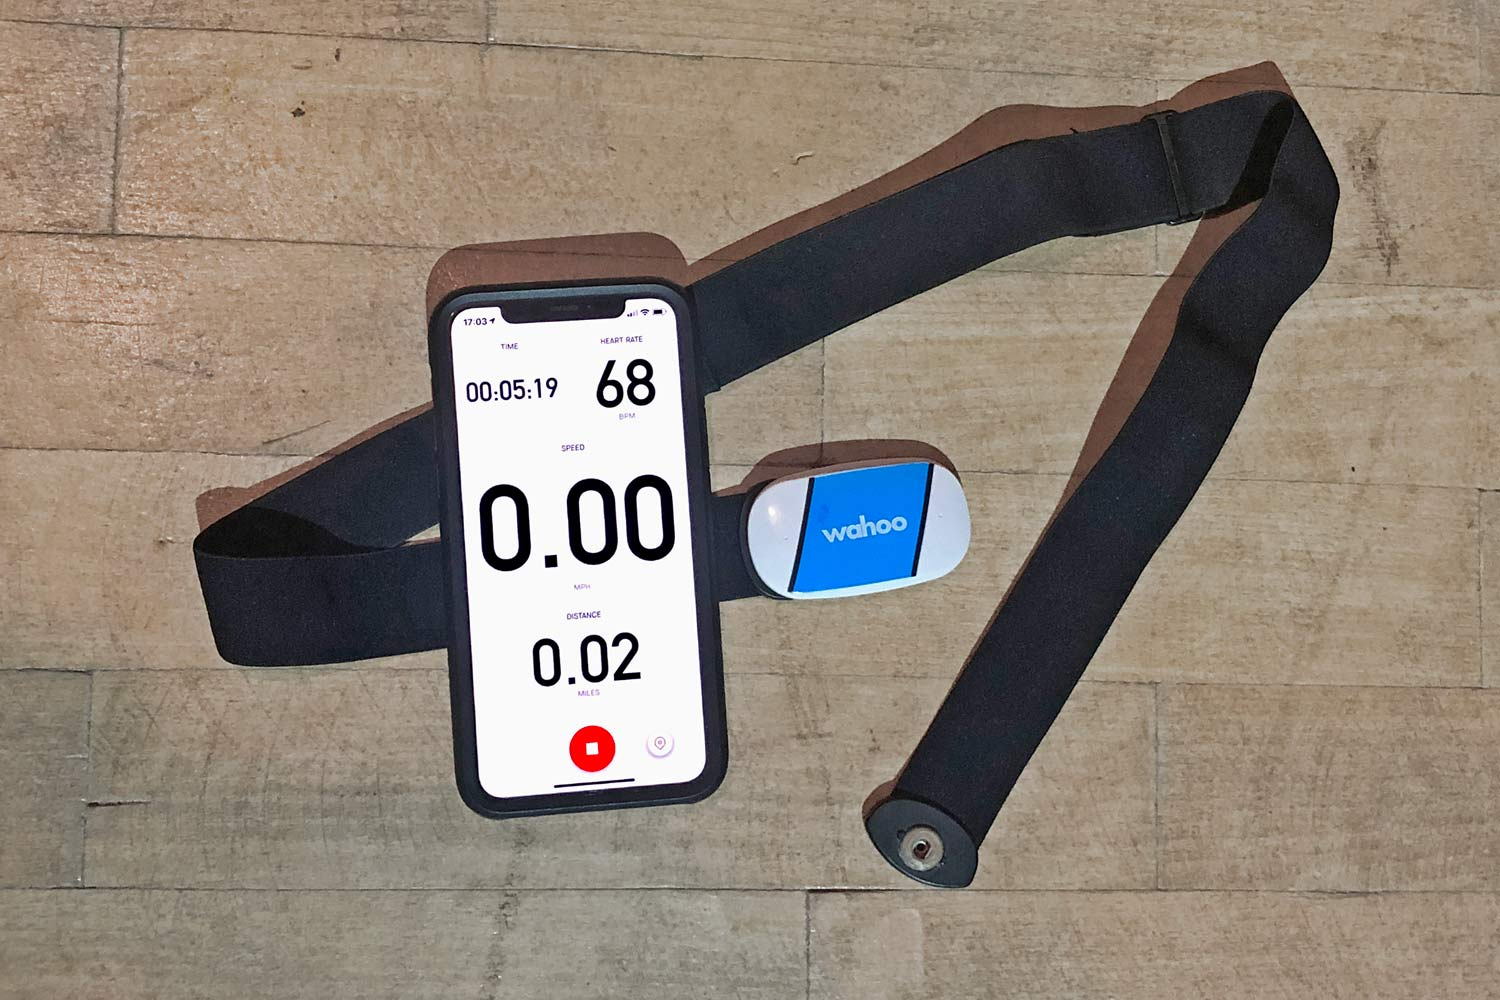 Strava mobile app Bluetooth heart rate tracking returns, iPhone paired to Wahoo Tickr